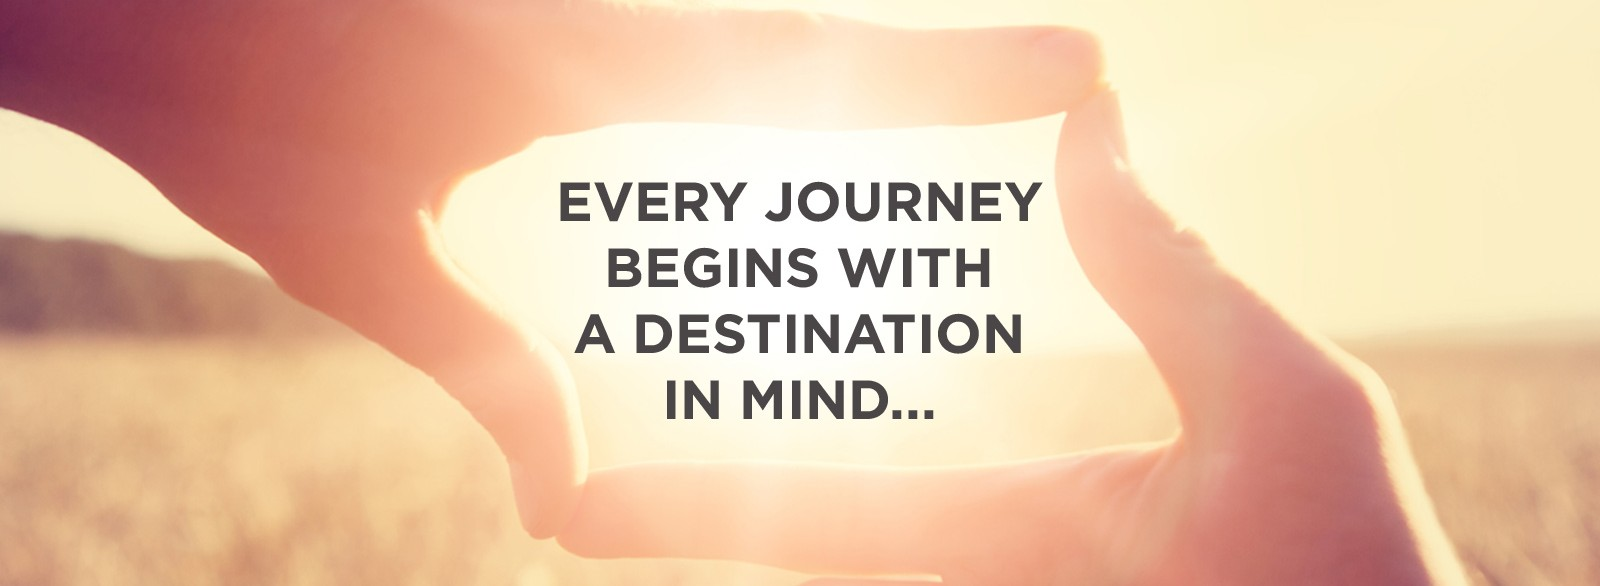 Every Journey Begins with a Destination in Mind...